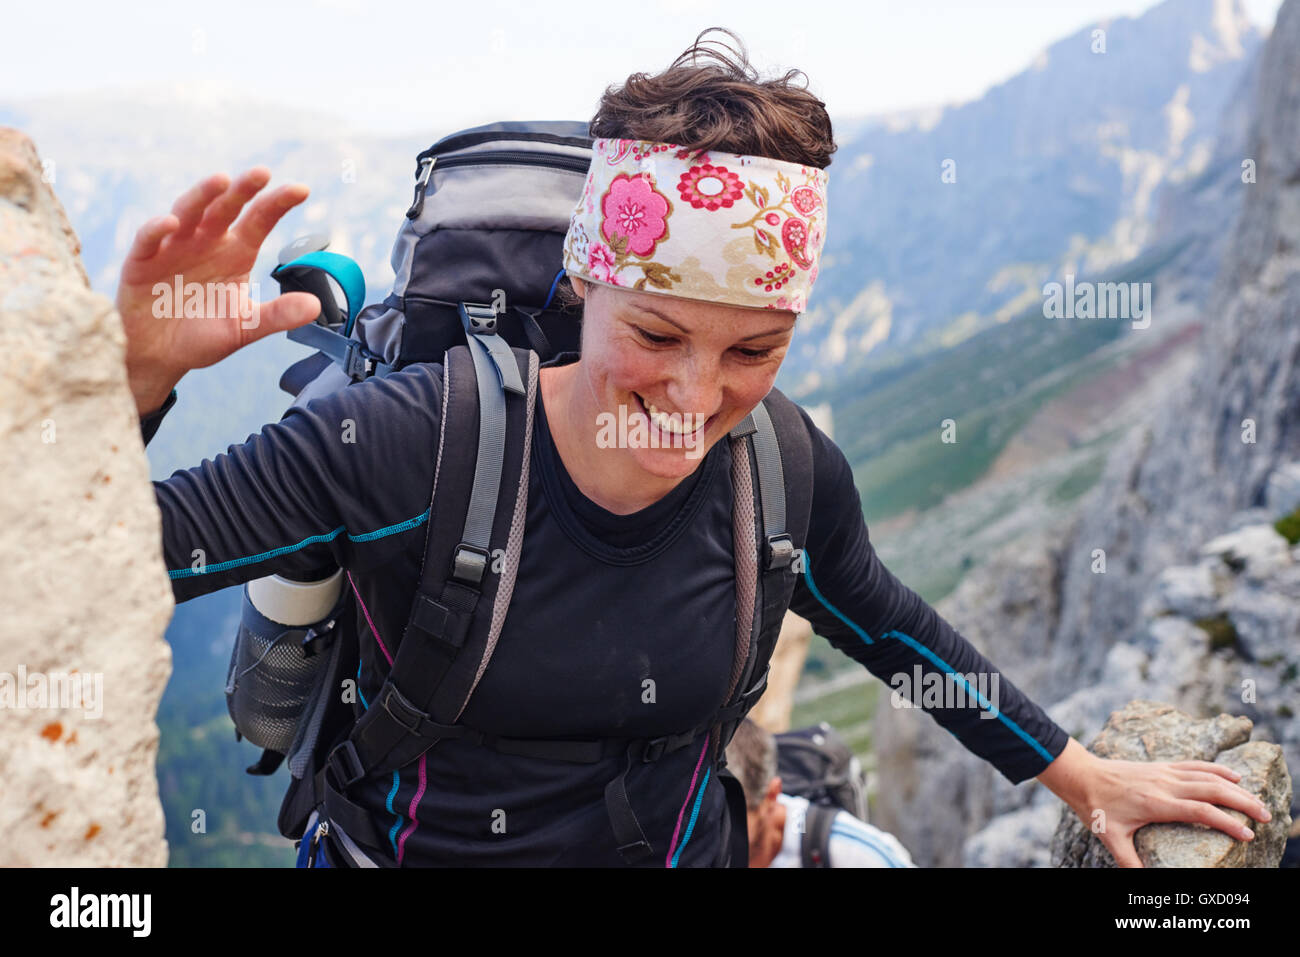 Woman Hiking fino mountain sorridente, Austria Immagini Stock